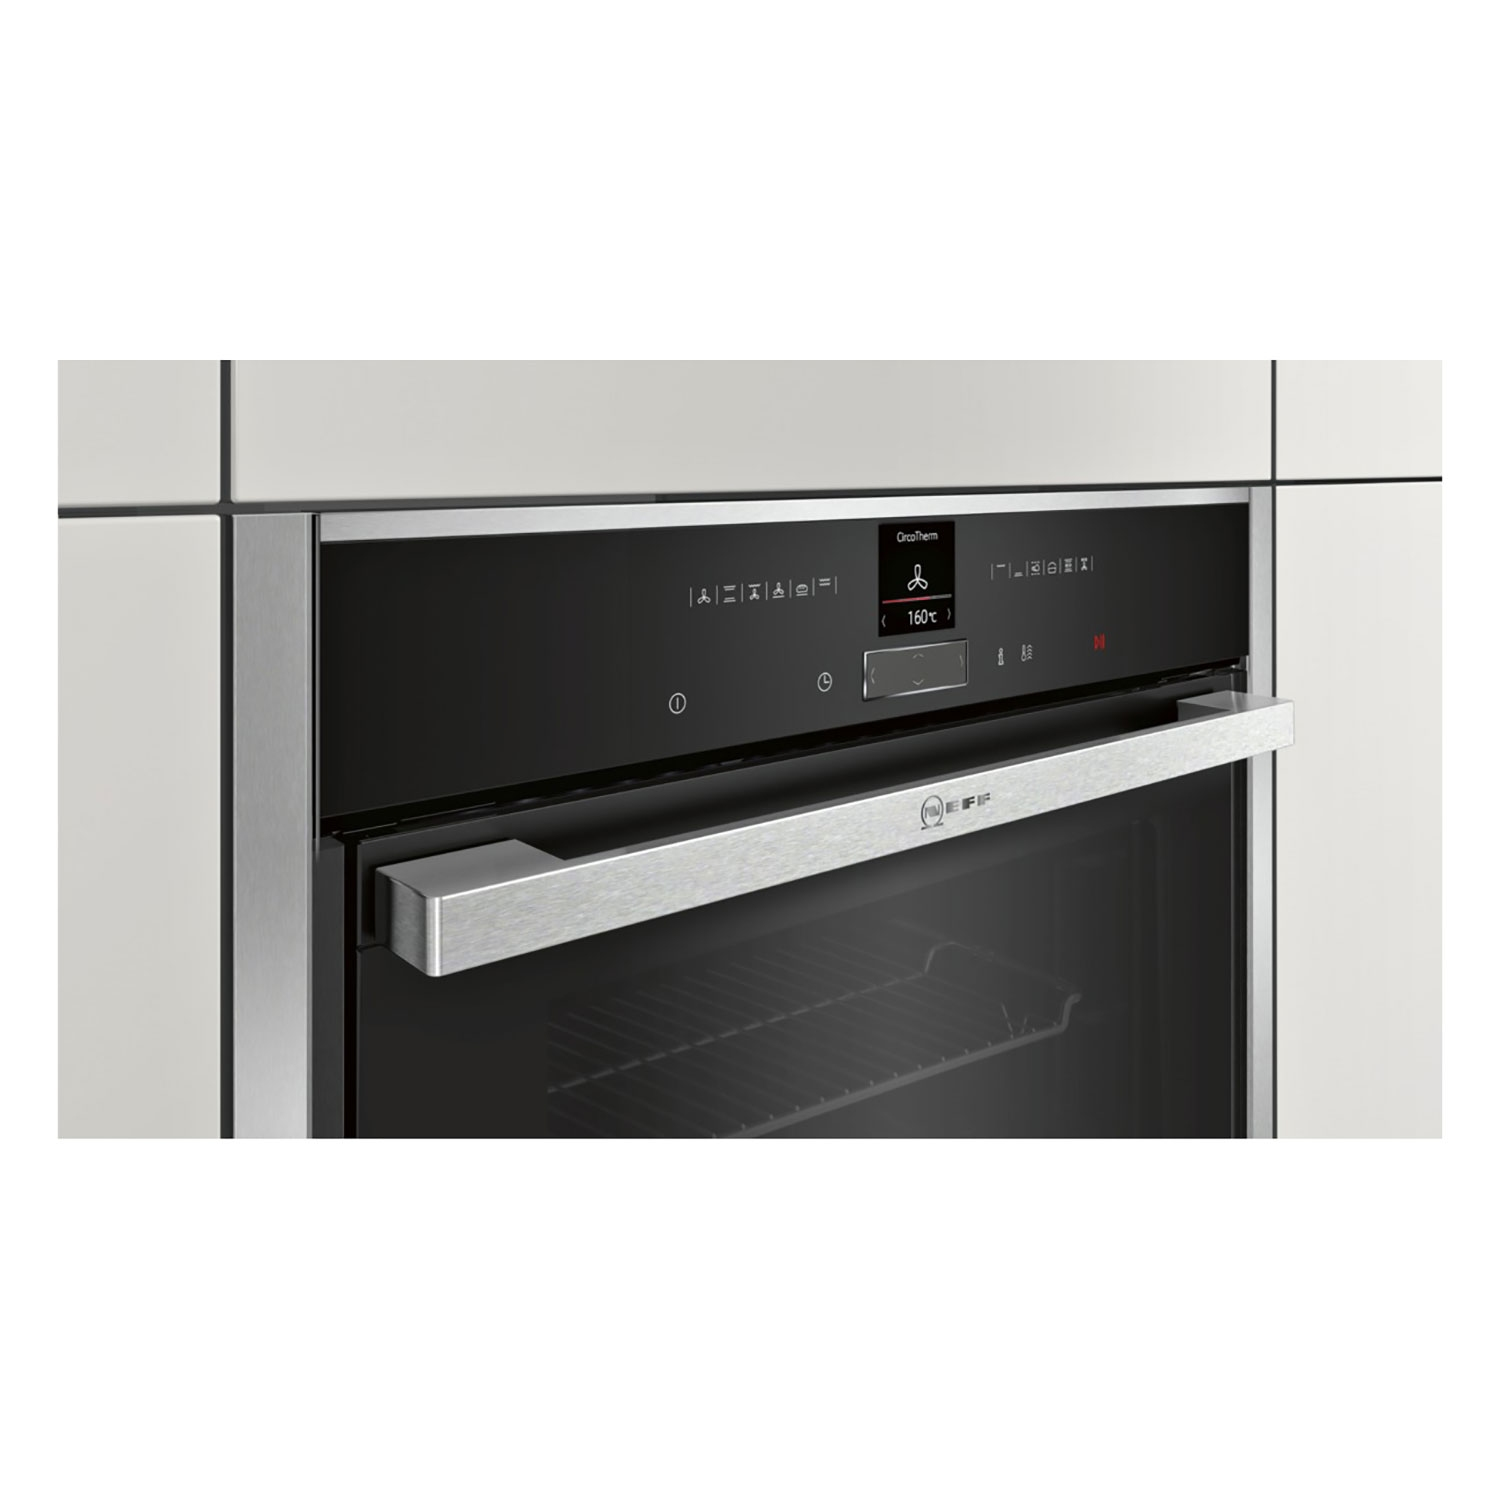 Neff Pyrolytic Slide & Hide Built In Electric Single Oven - Stainless Steel - 1